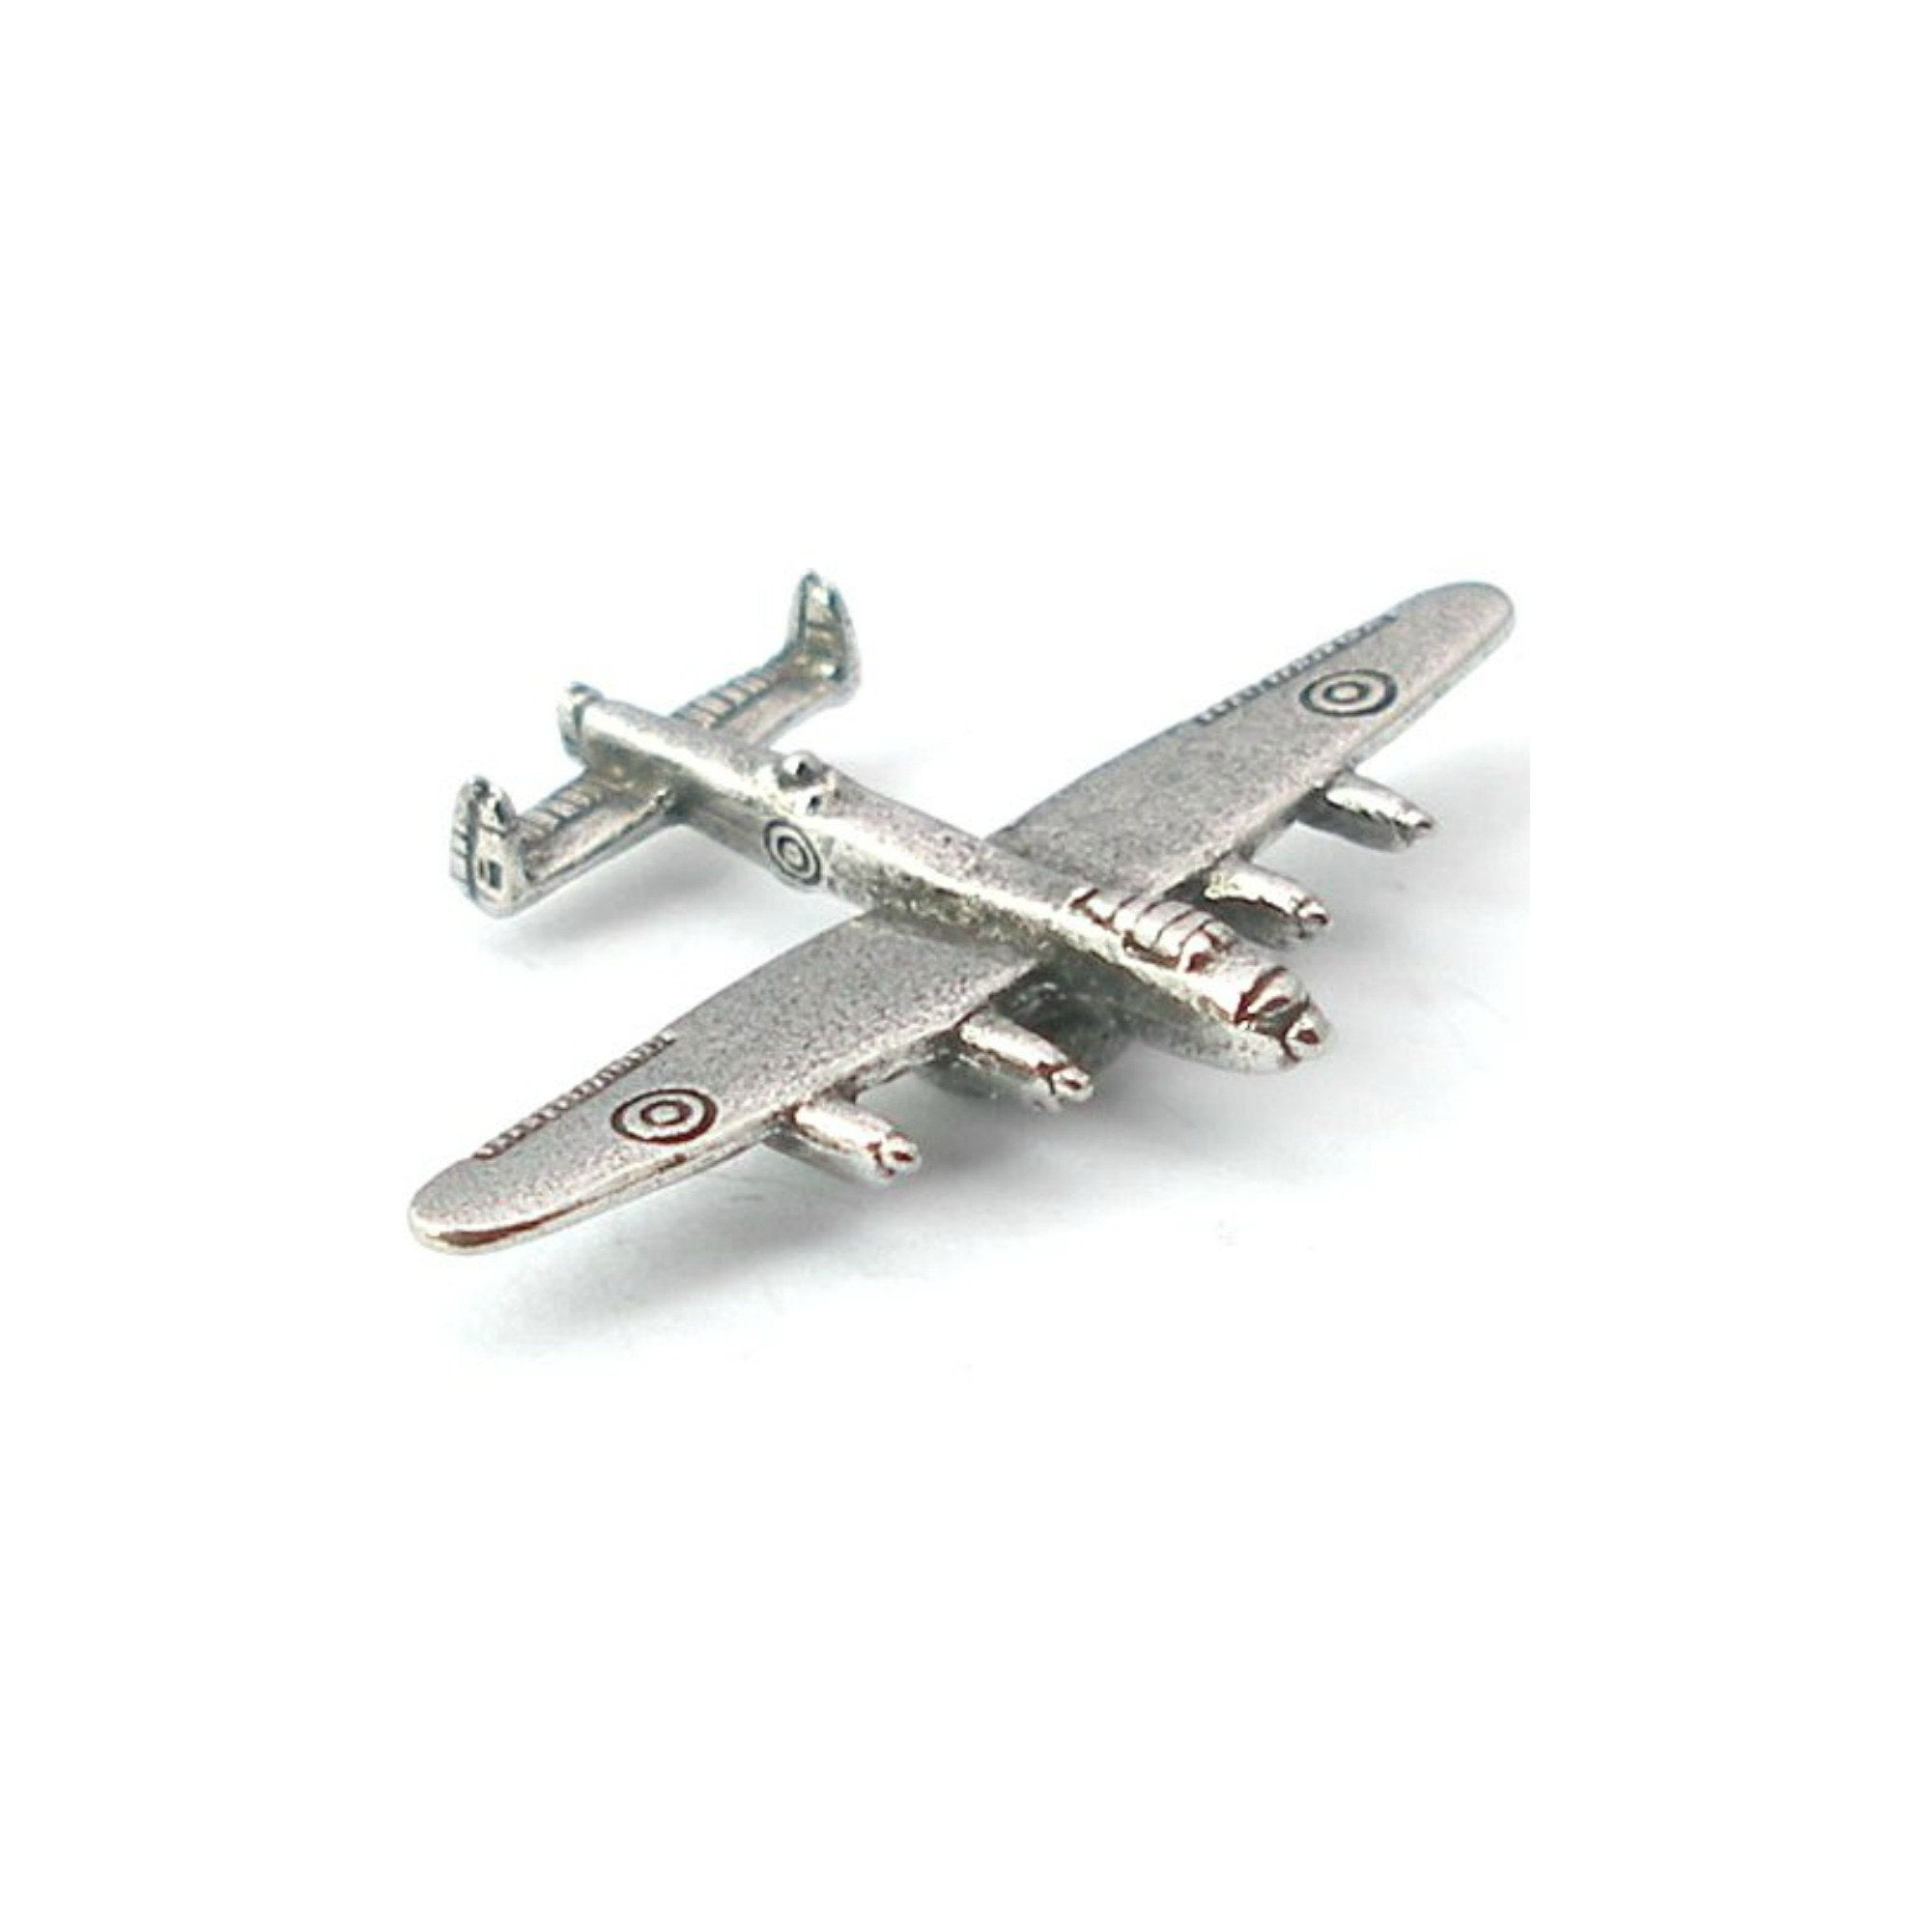 Eurofighter English Pewter Pin Lapel Brooch Badge Gift 120